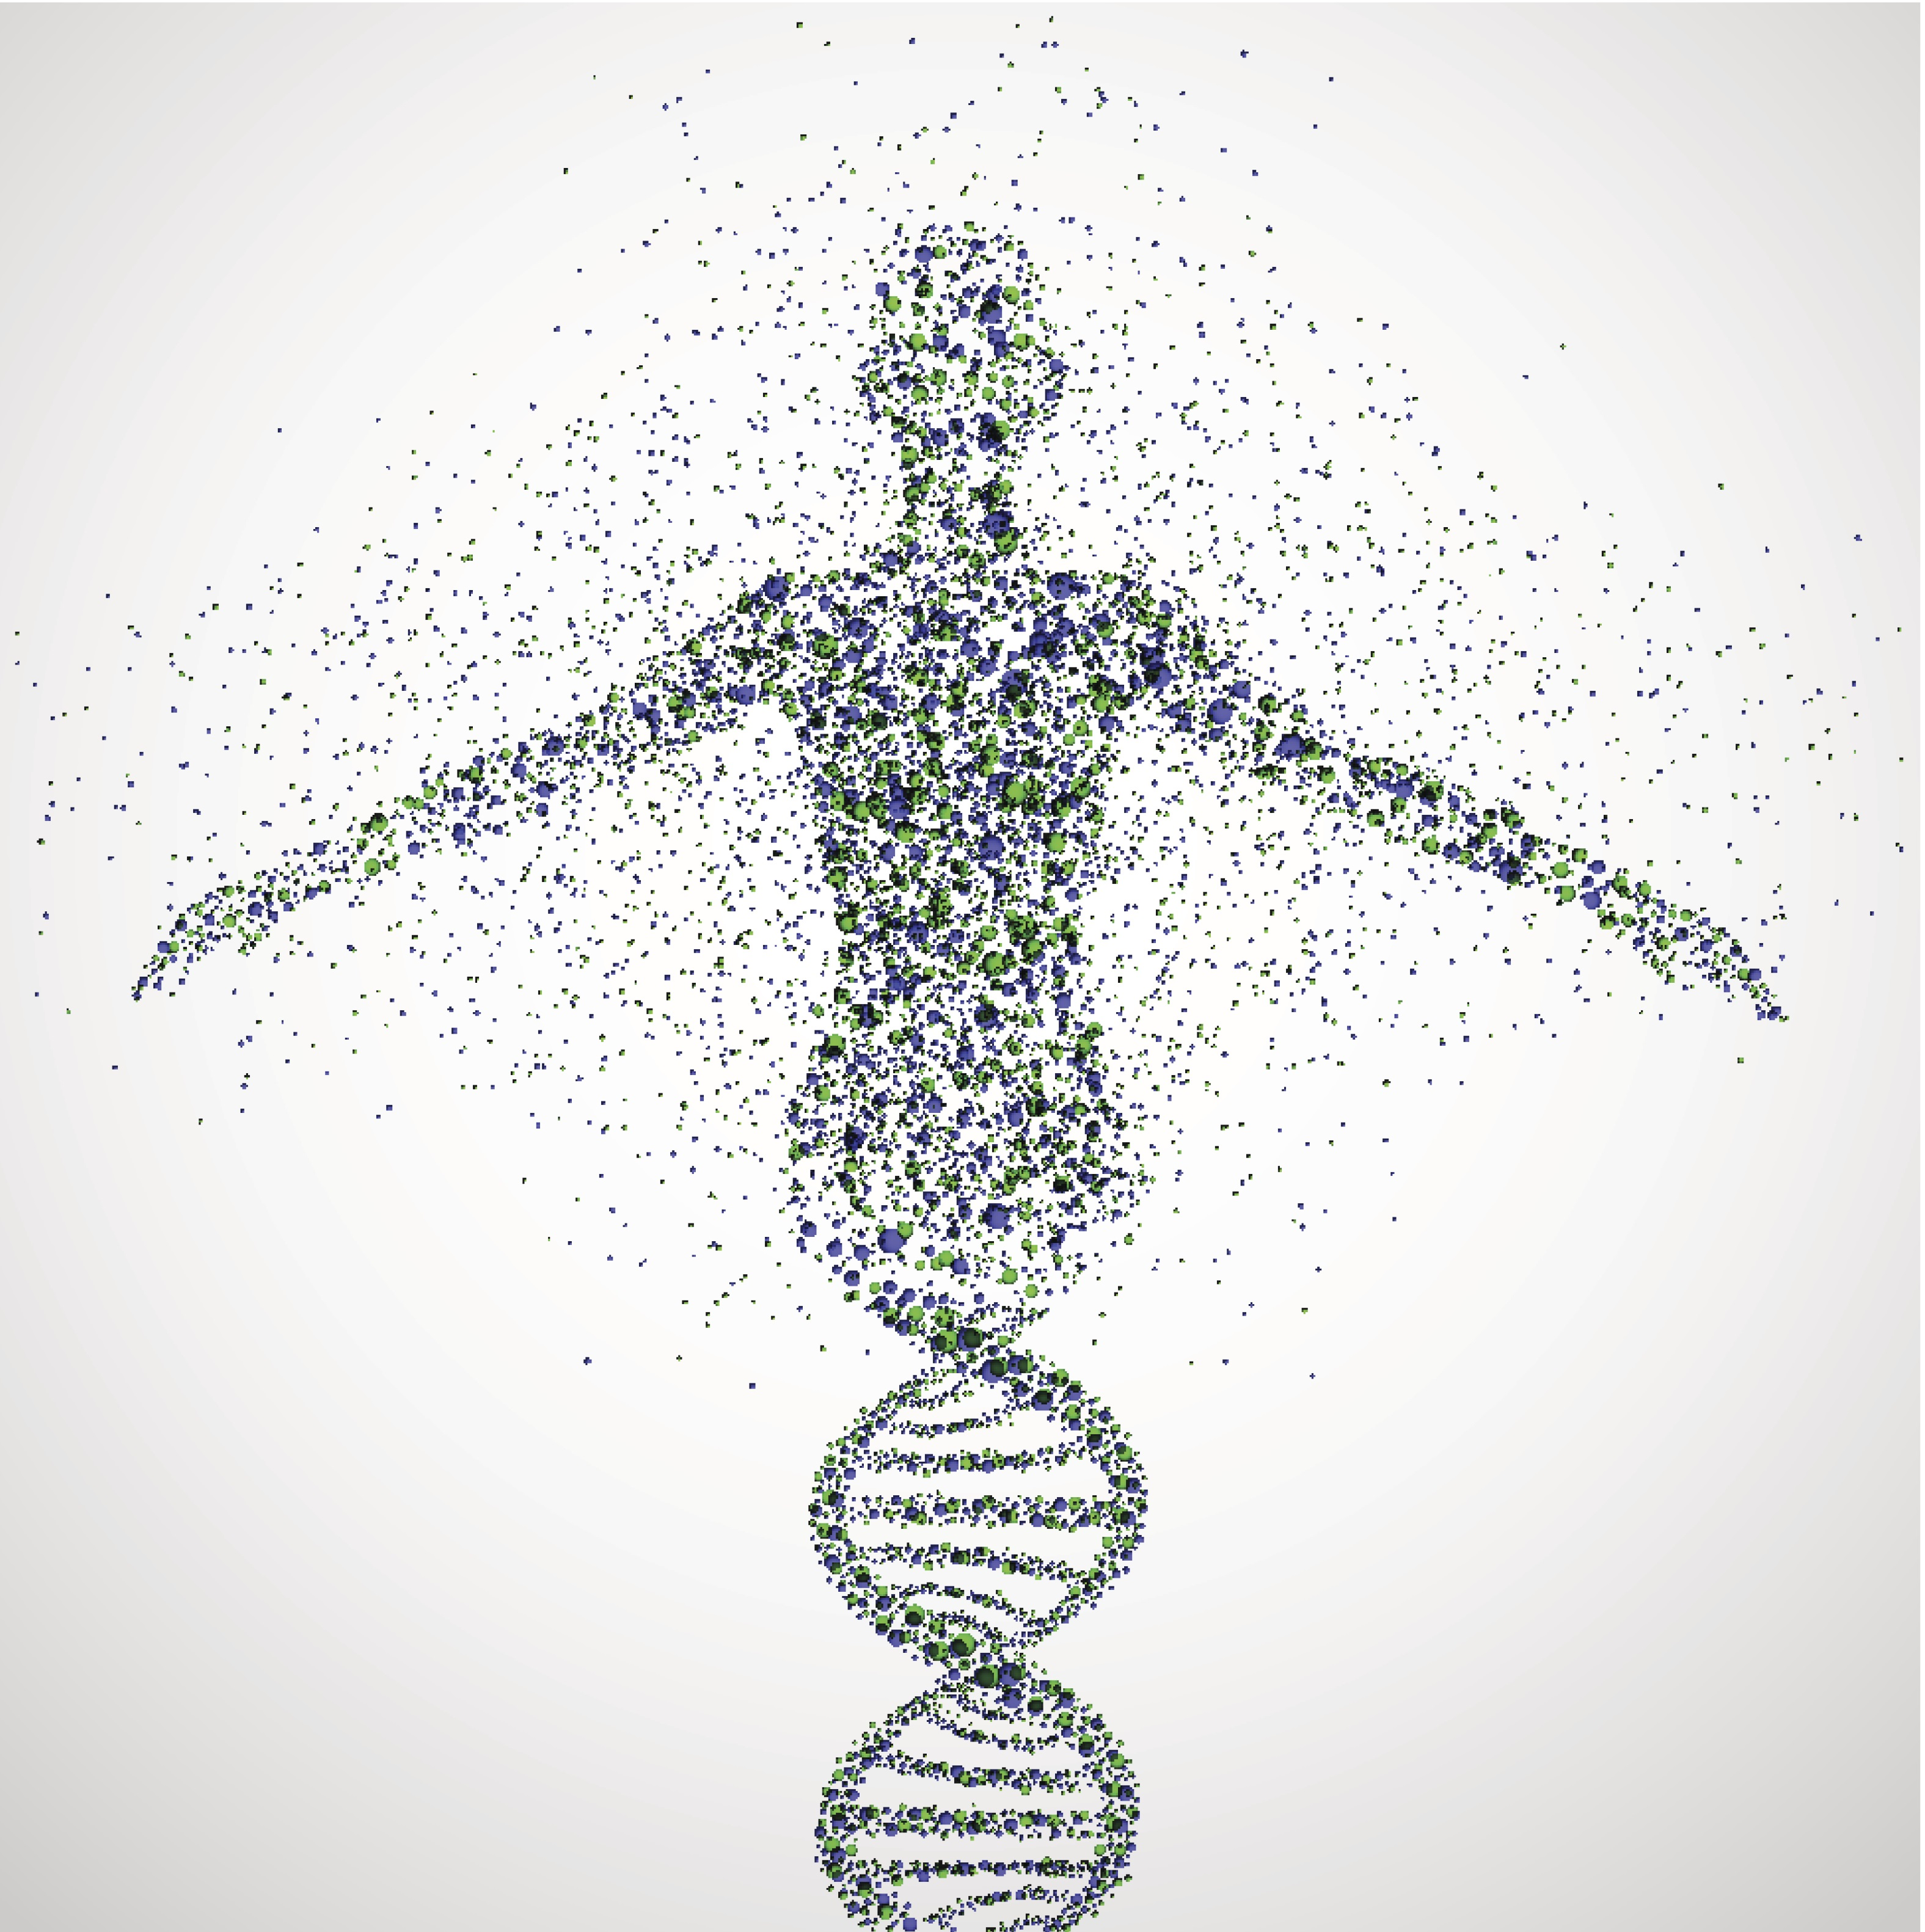 the human genome project The human genome project revealed how the 32 billion base pairs contained in the human genome are ordered learn more about the human genome project.